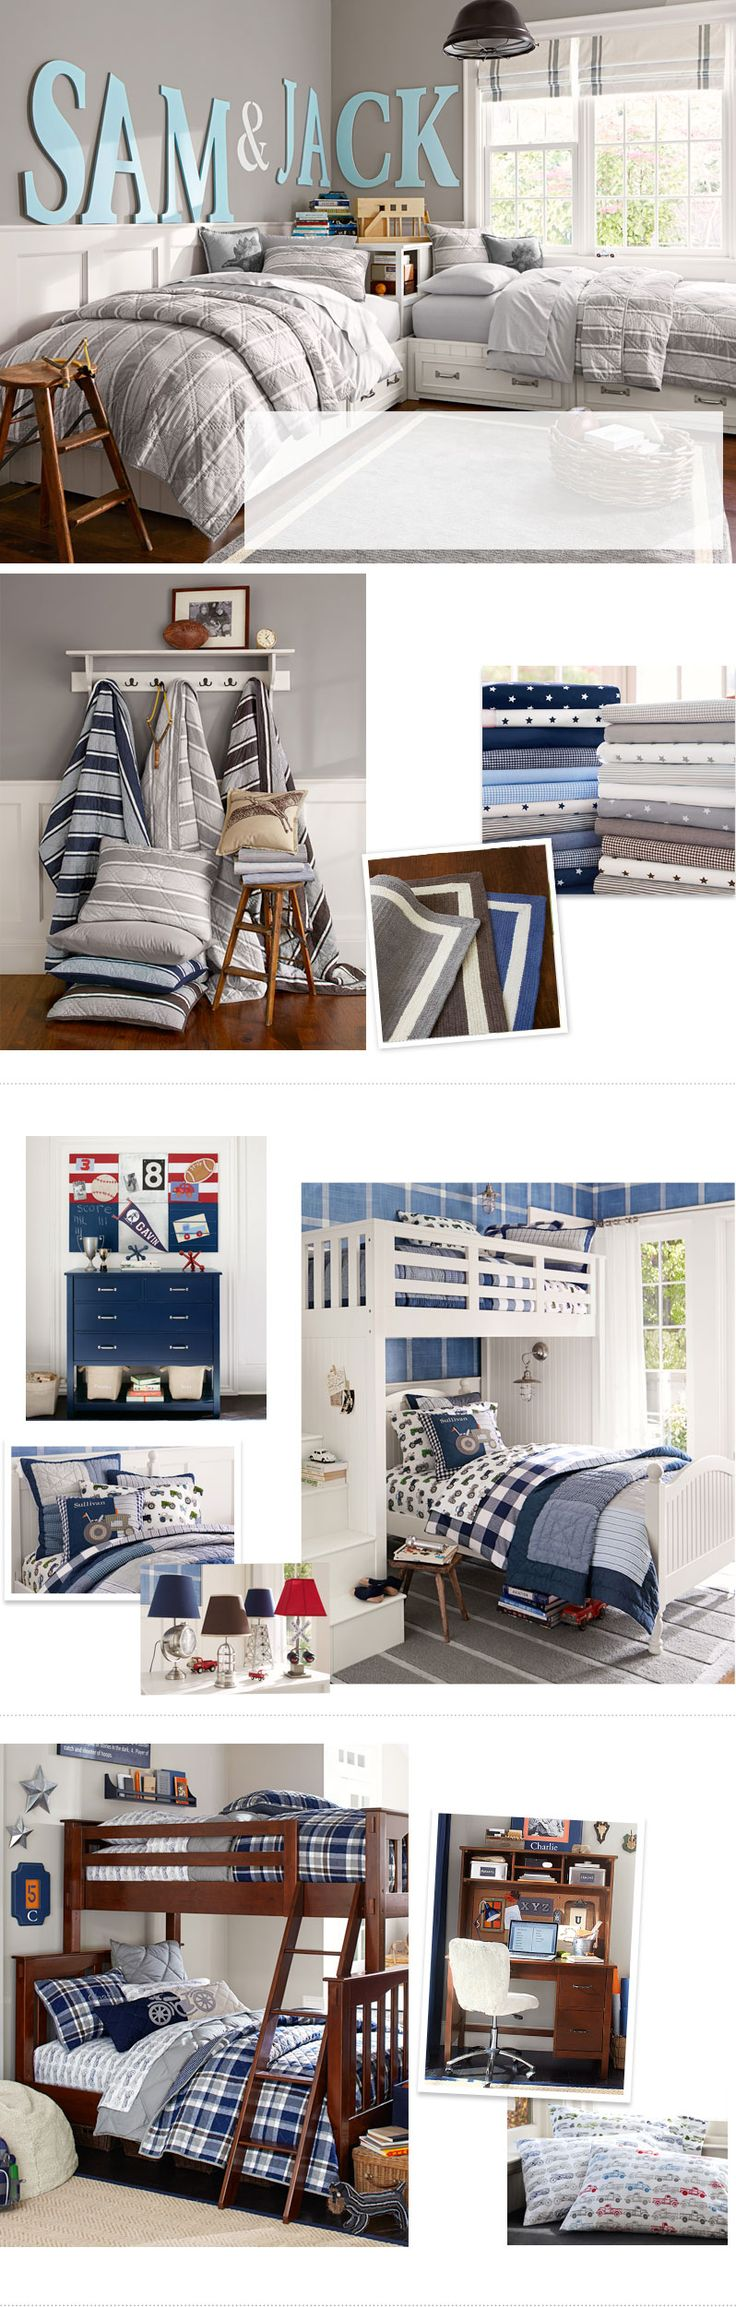 Pottery Barn Kids Bedroom Furniture 387 Best Images About Boy Bedrooms On Pinterest Pottery Barn